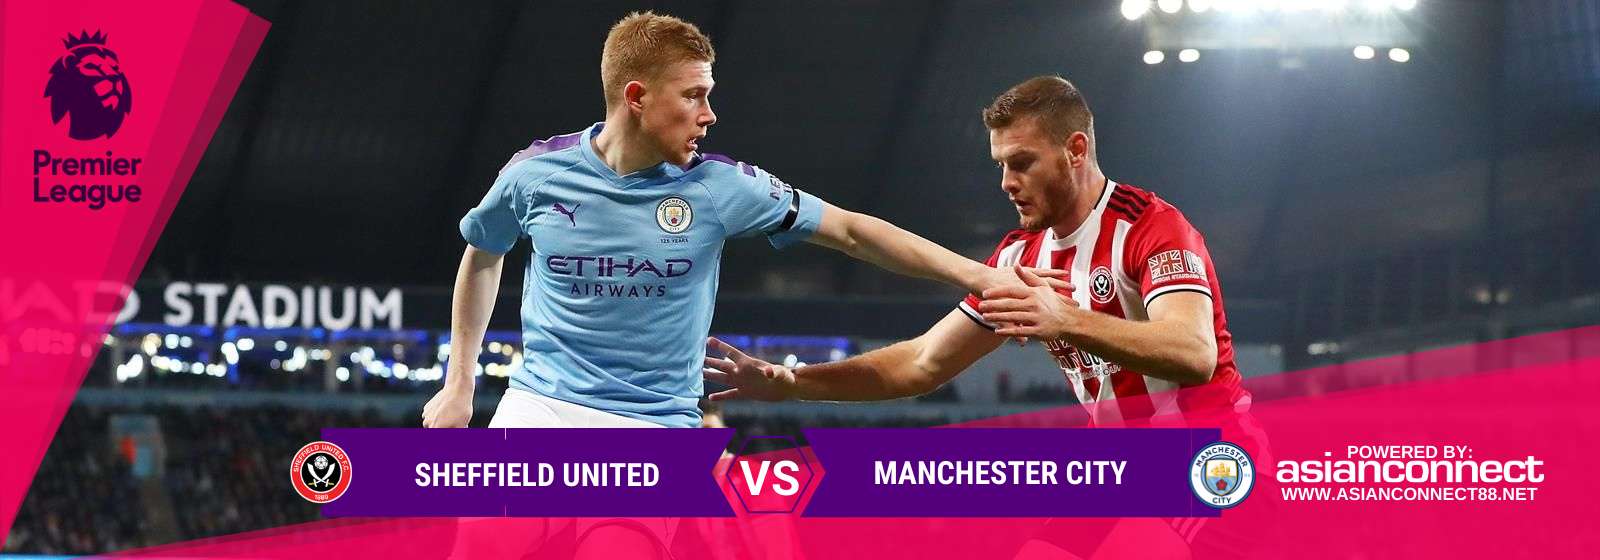 Asianconnect: Sheffield United vs Manchester City Odds for January 21, 2020